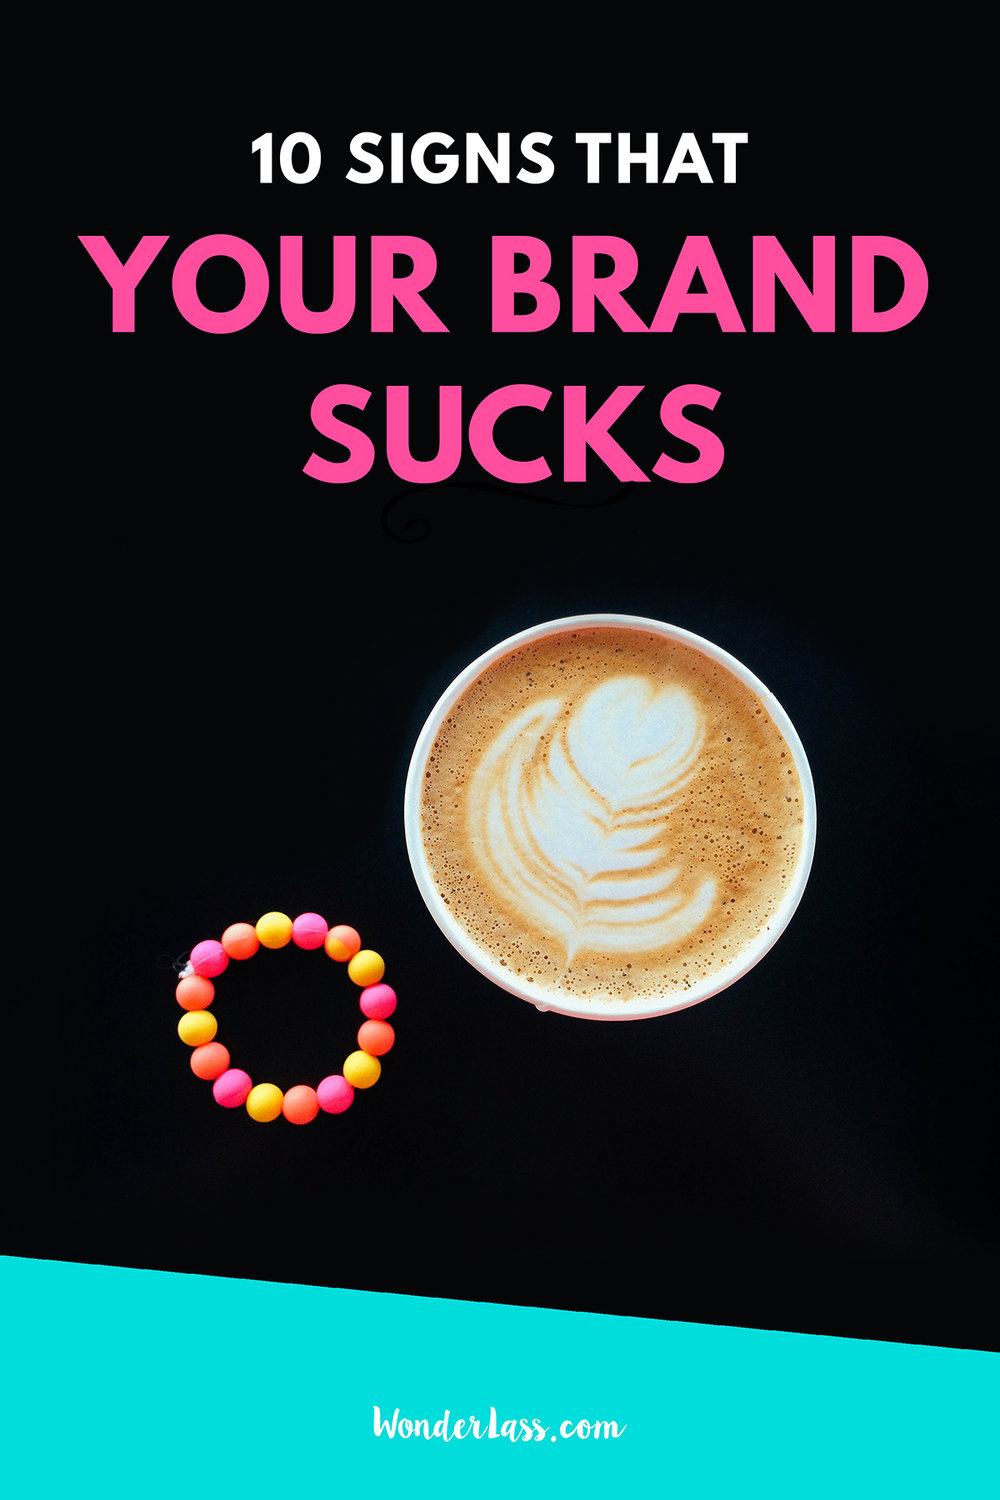 10 signs that your brand sucks | Wondering if your brand is professional on point? Check out this blog post!